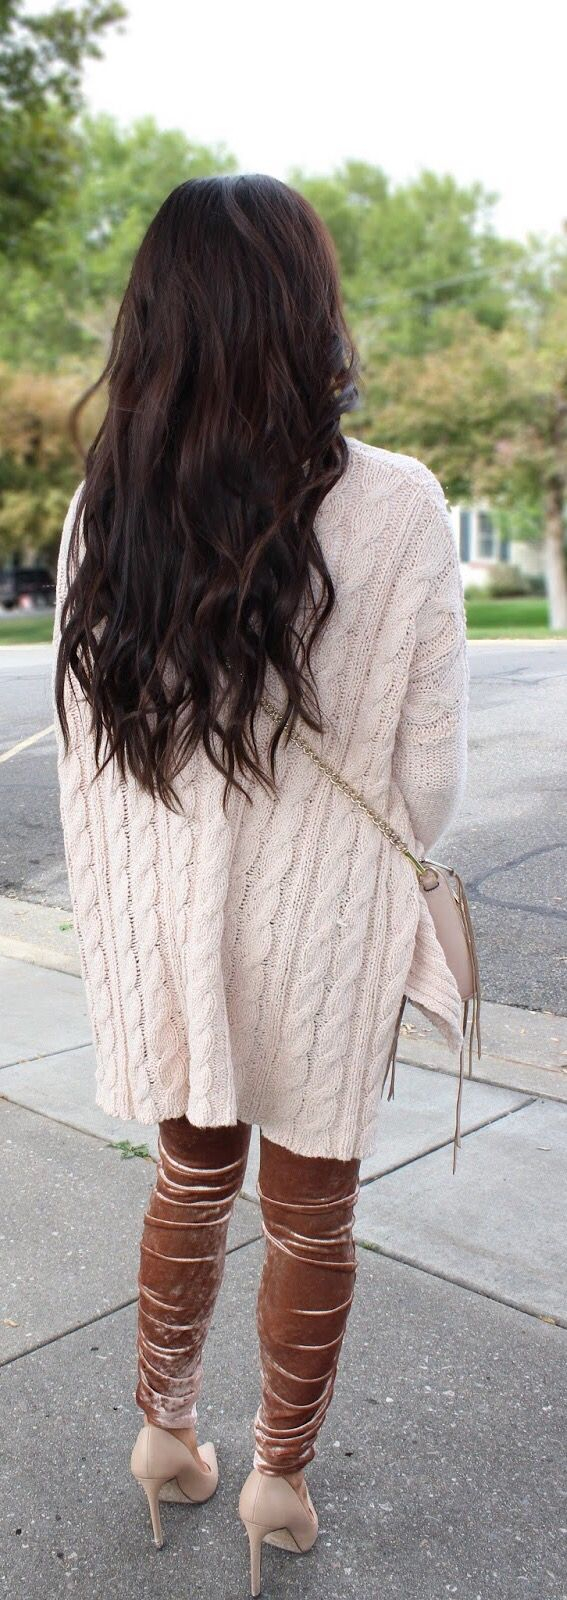 Dark brown hair with waves. Cable knit sweater and velvet leggings with nude pumps and crossbody. Romantic valentines day Holiday Fall / Christmas winter outfit inspiration. Womens fashion. IG:Sarahandelizabeth